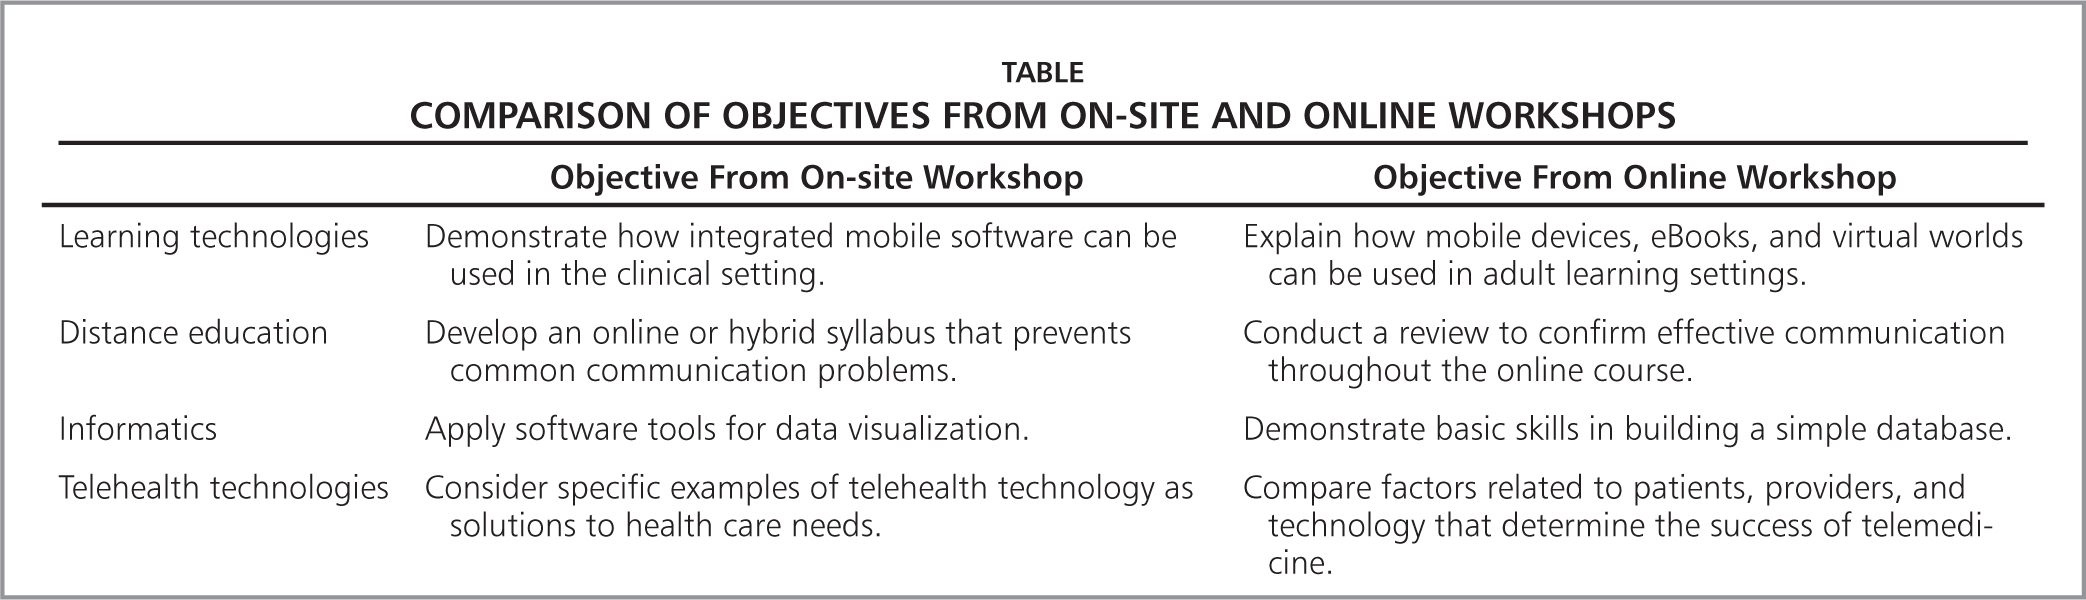 Comparison of Objectives from On-Site and Online Workshops